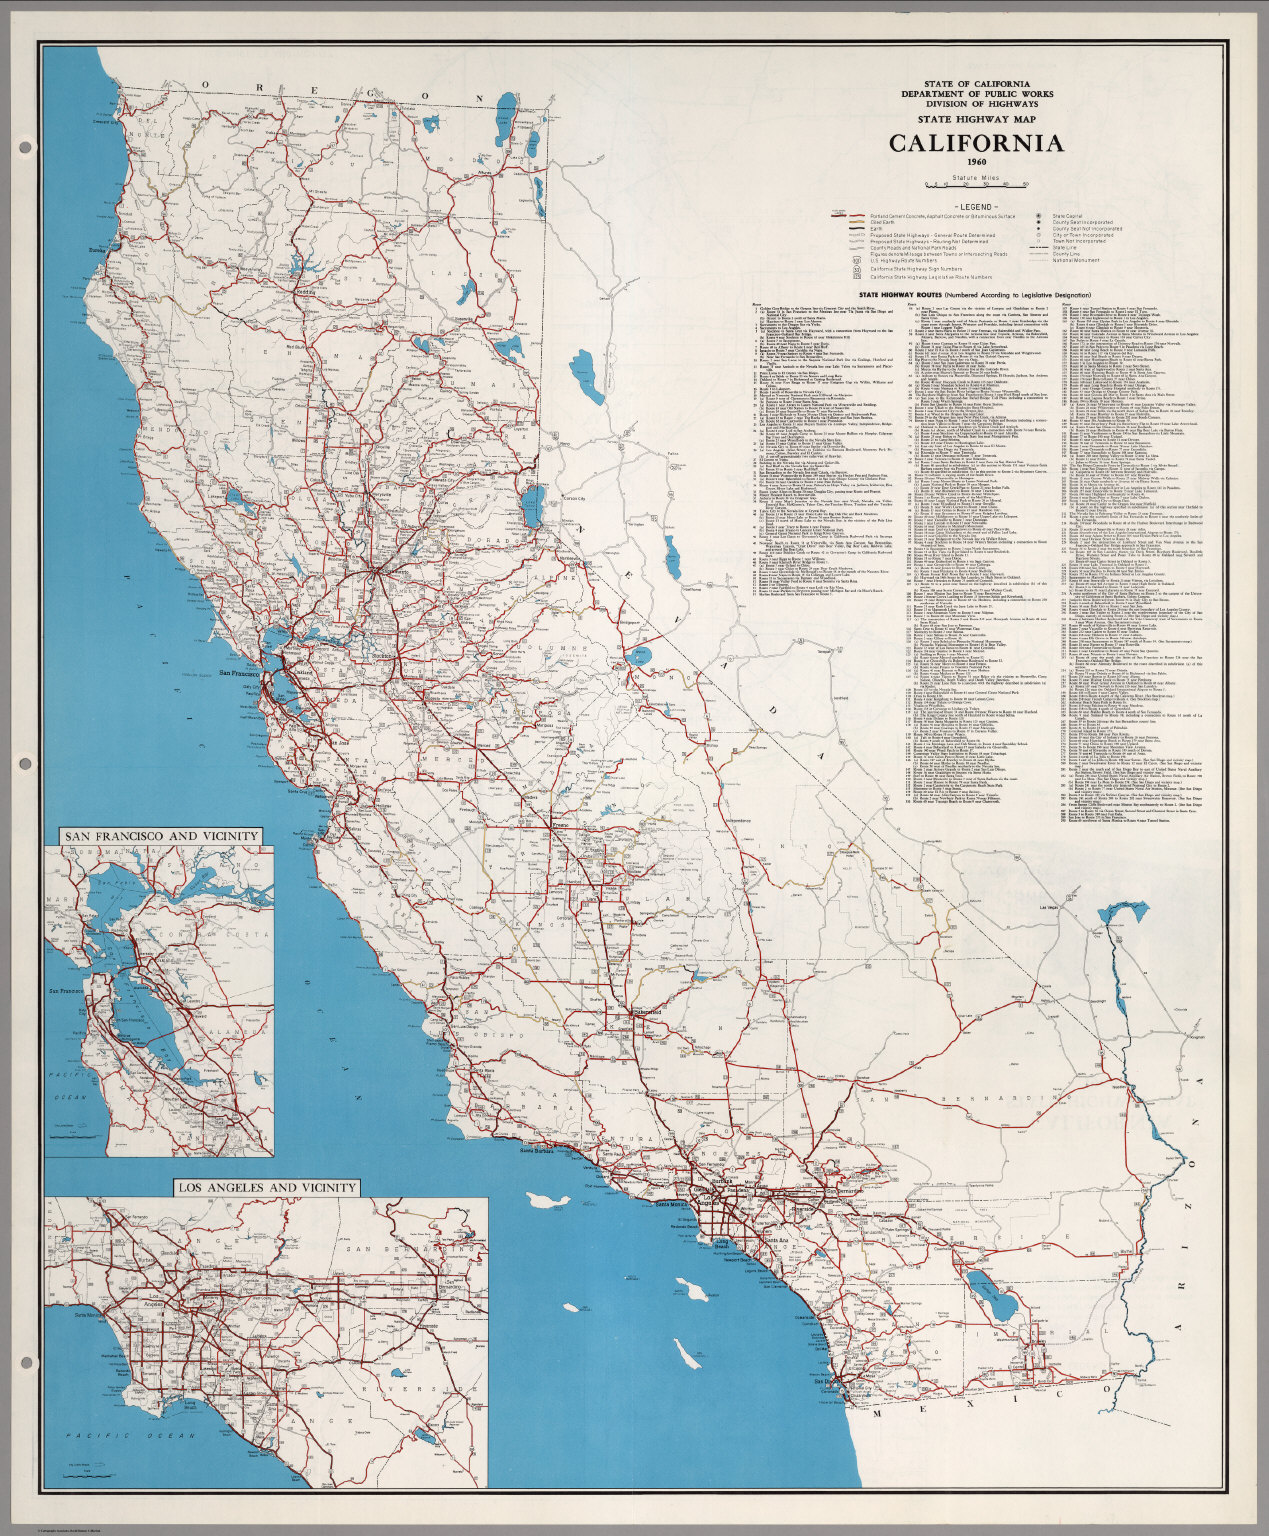 State Highway Map California 1960 David Rumsey Historical Map